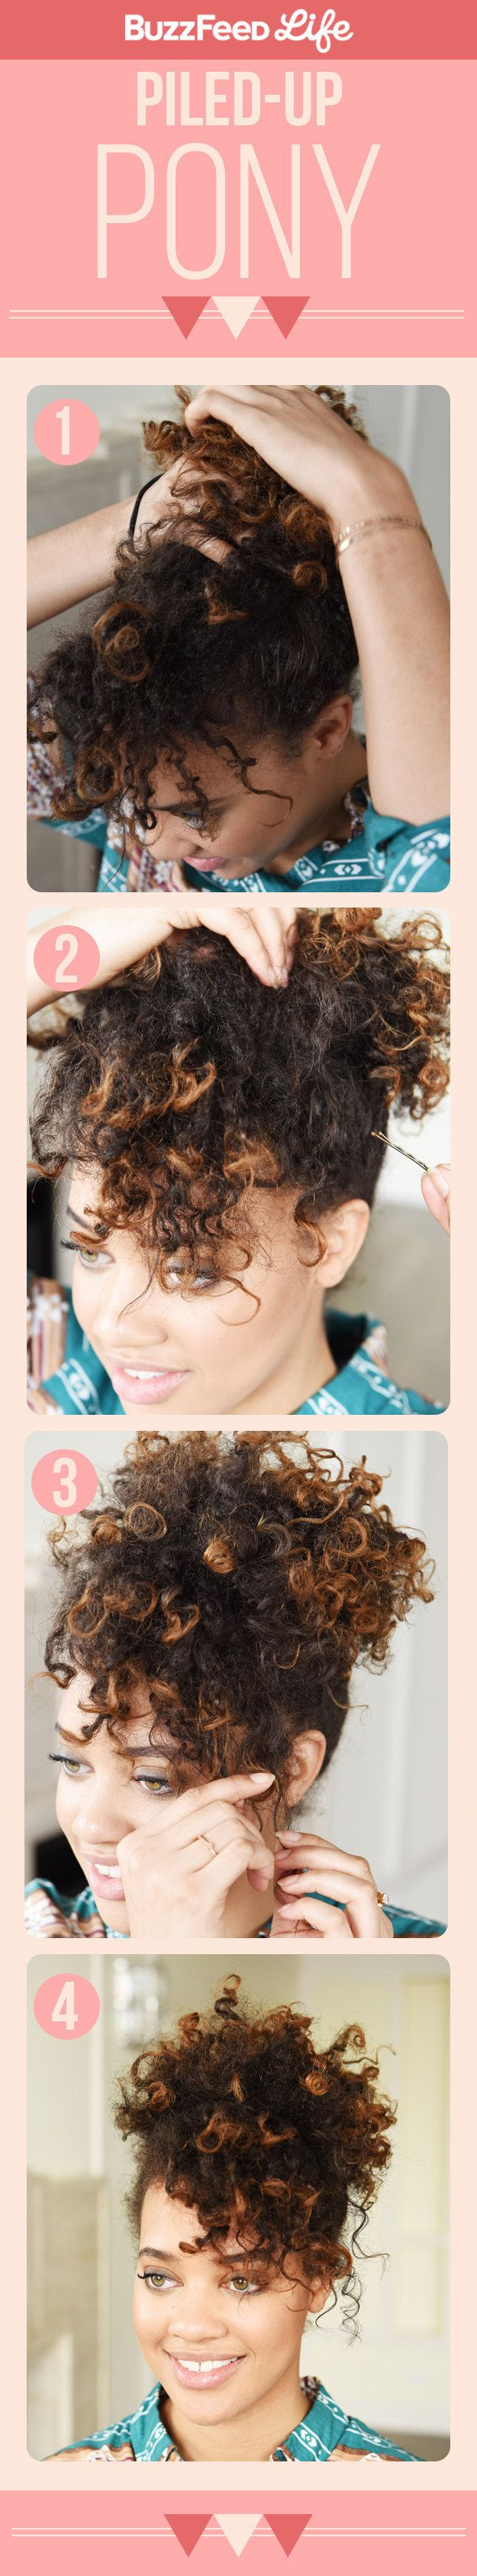 15 Super Easy Hairstyles To Try For Back To School